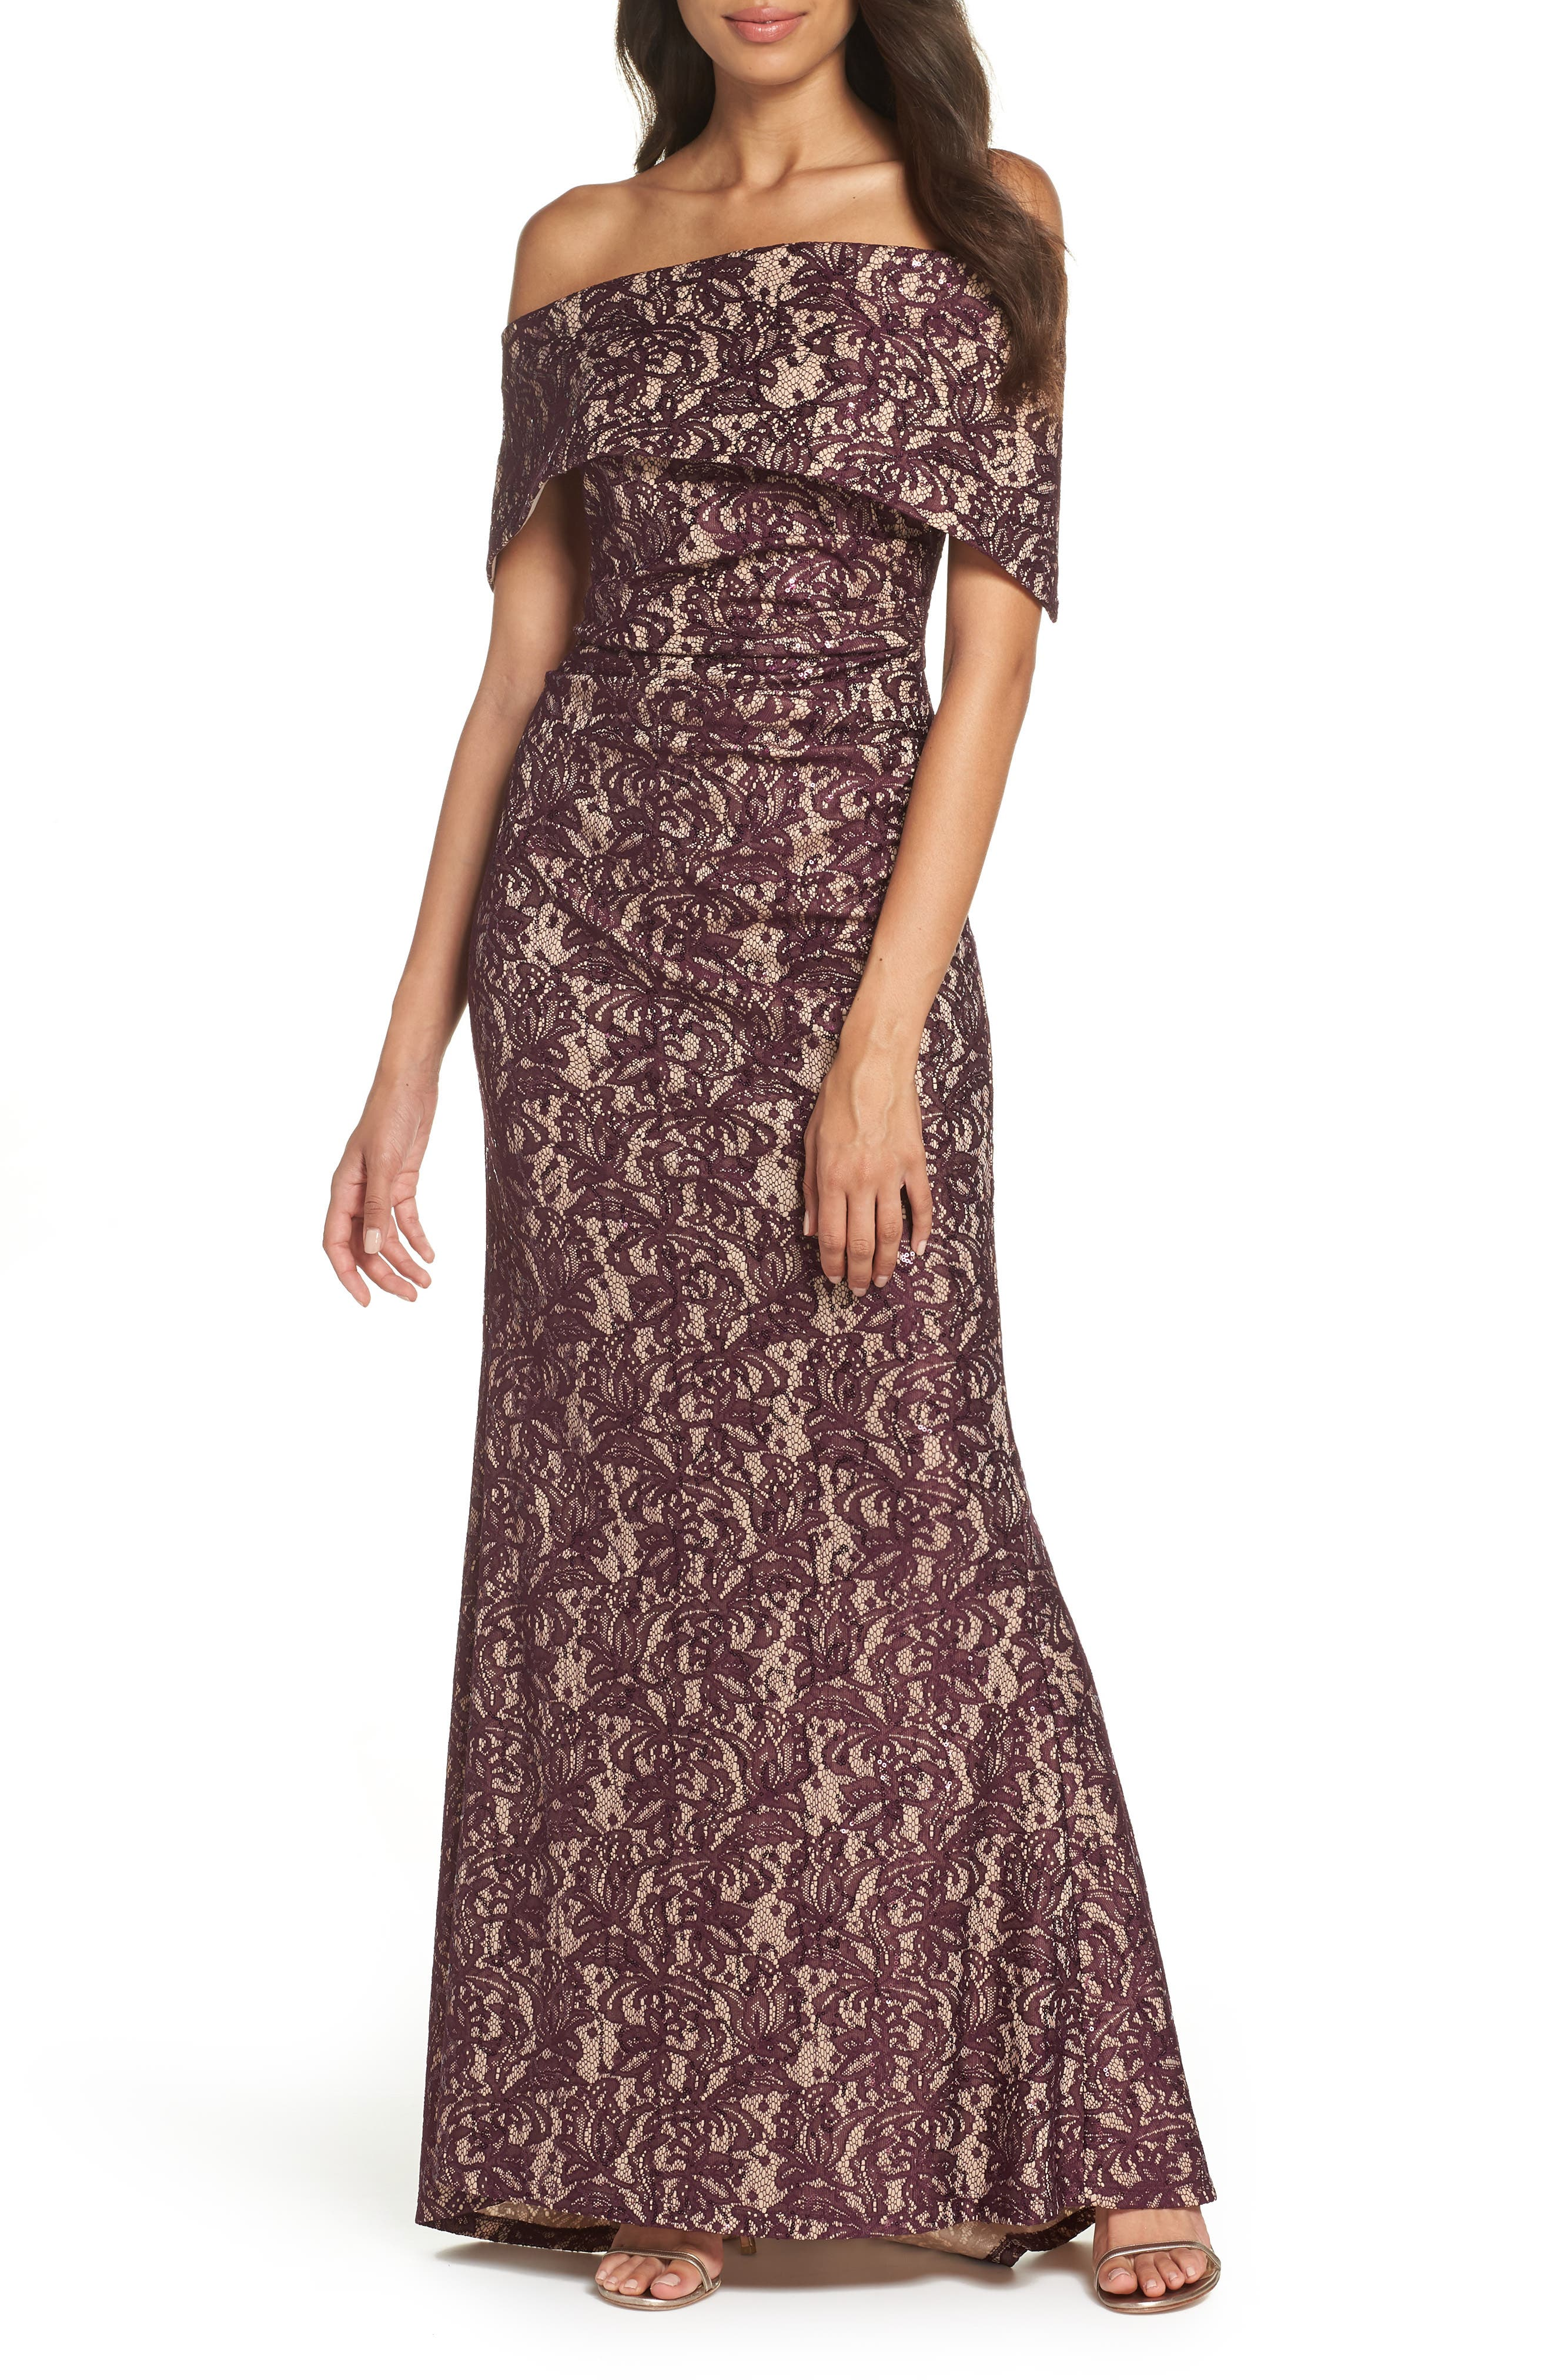 VINCE CAMUTO Sequin Off the Shoulder Gown, Main, color, WINE